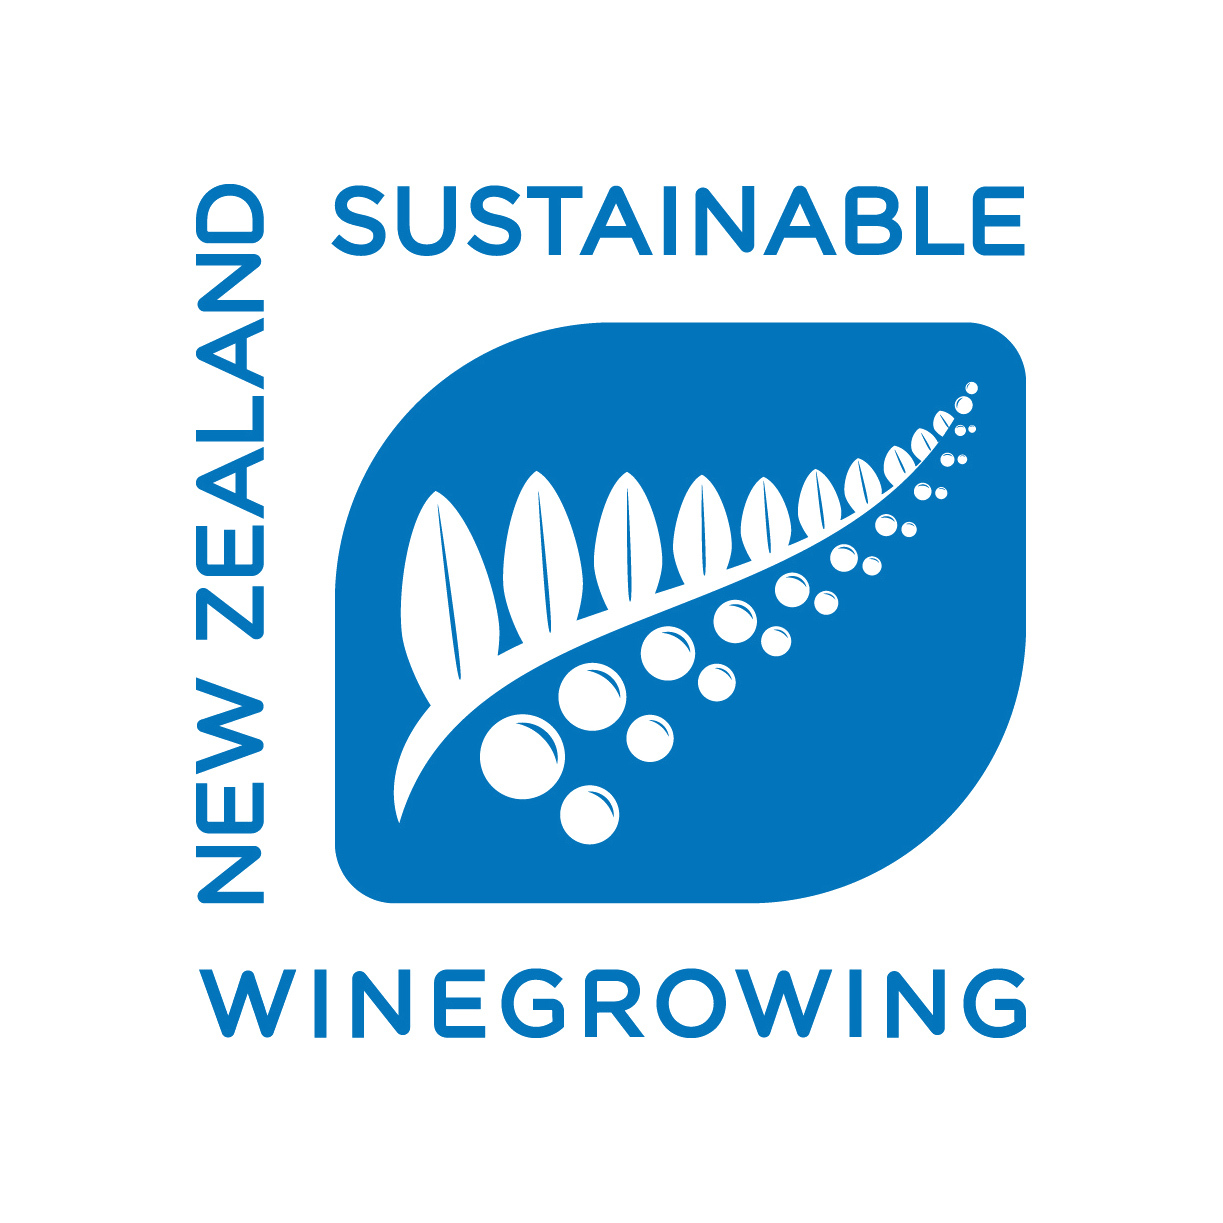 Sustainable winegrowing in New Zealand